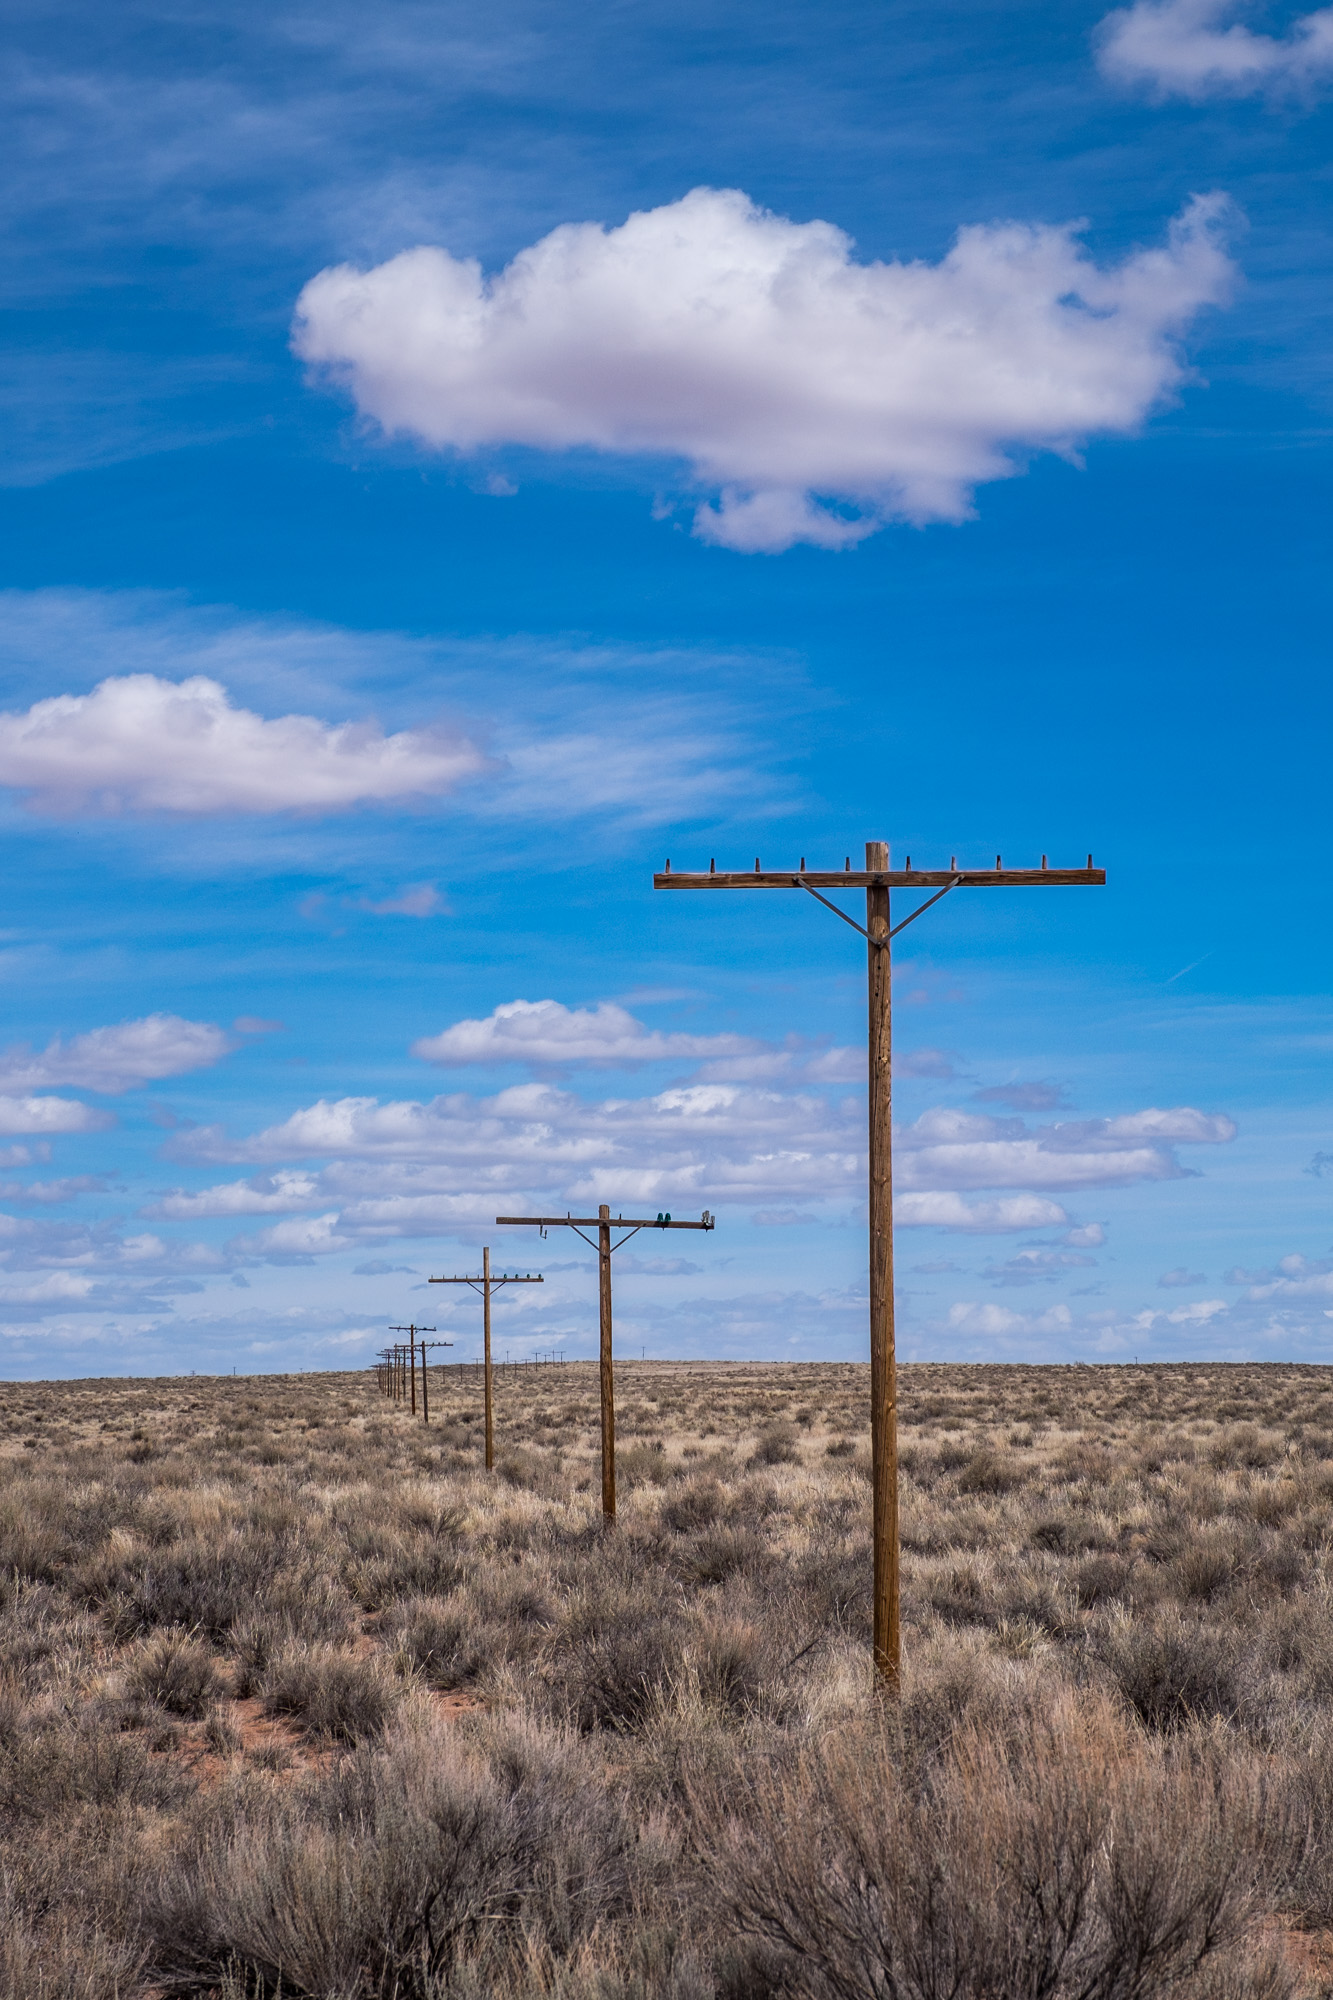 Not much exists of the old Route 66 in many places. Here, only old telephone poles show the old highway's once well traveled route.